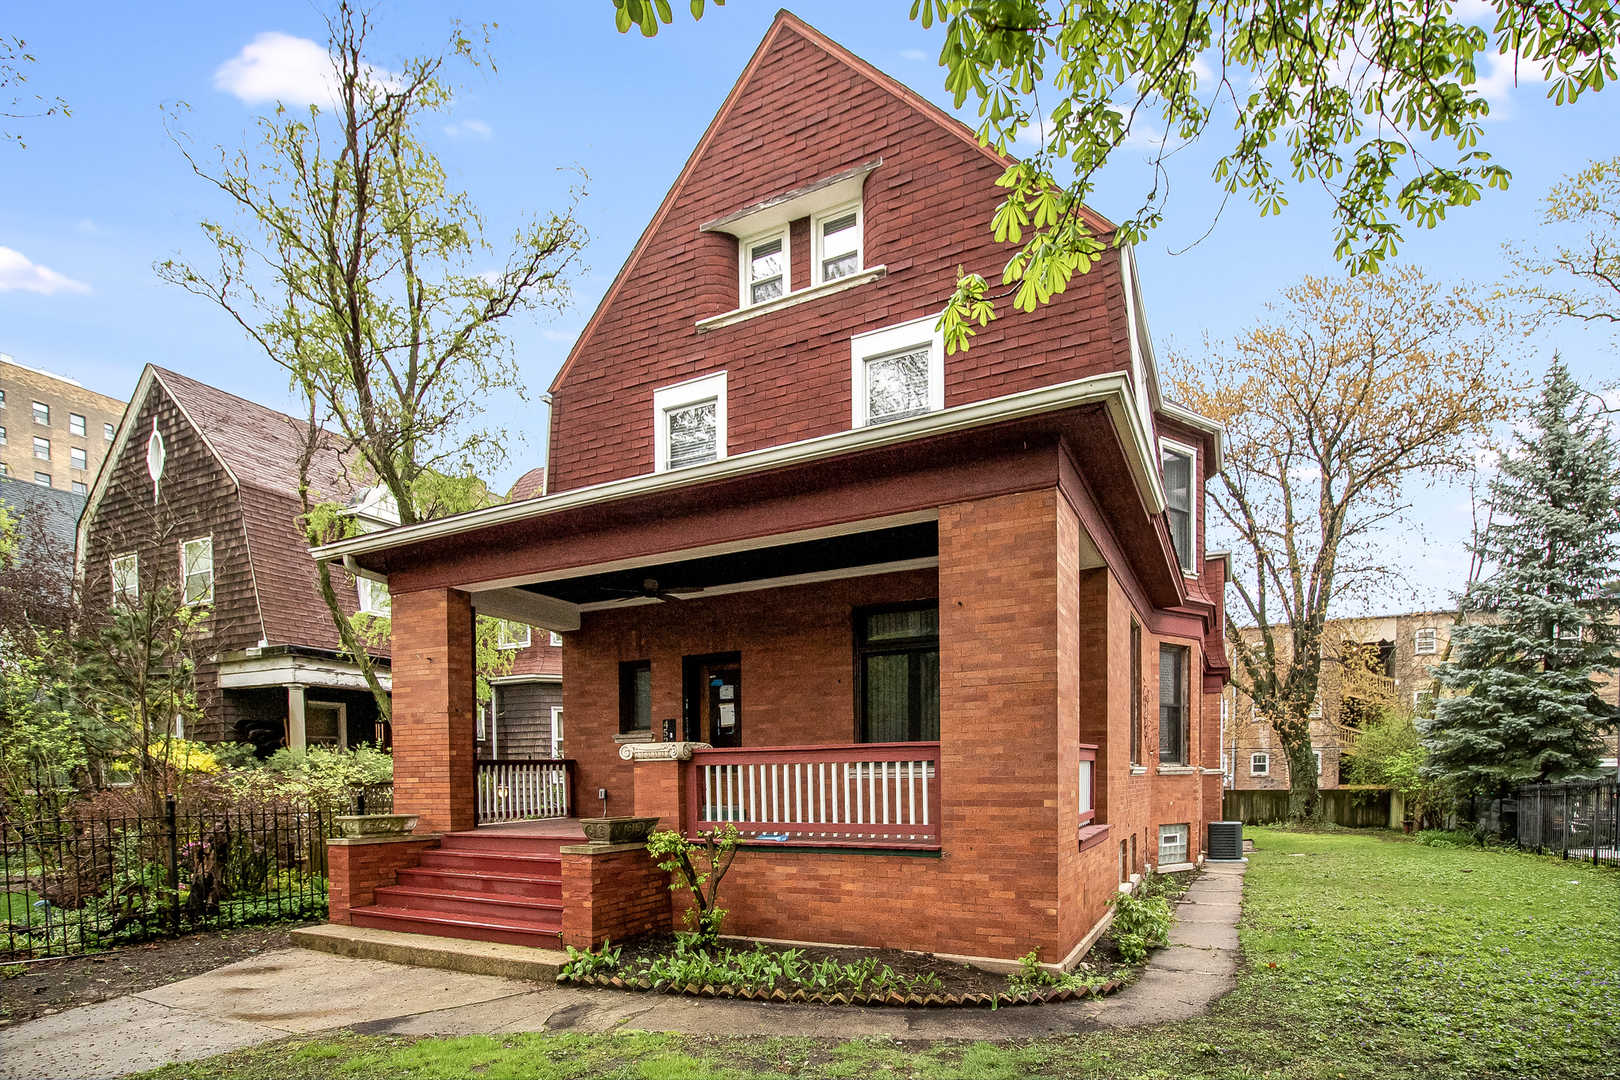 4525 Beacon ,Chicago, Illinois 60640